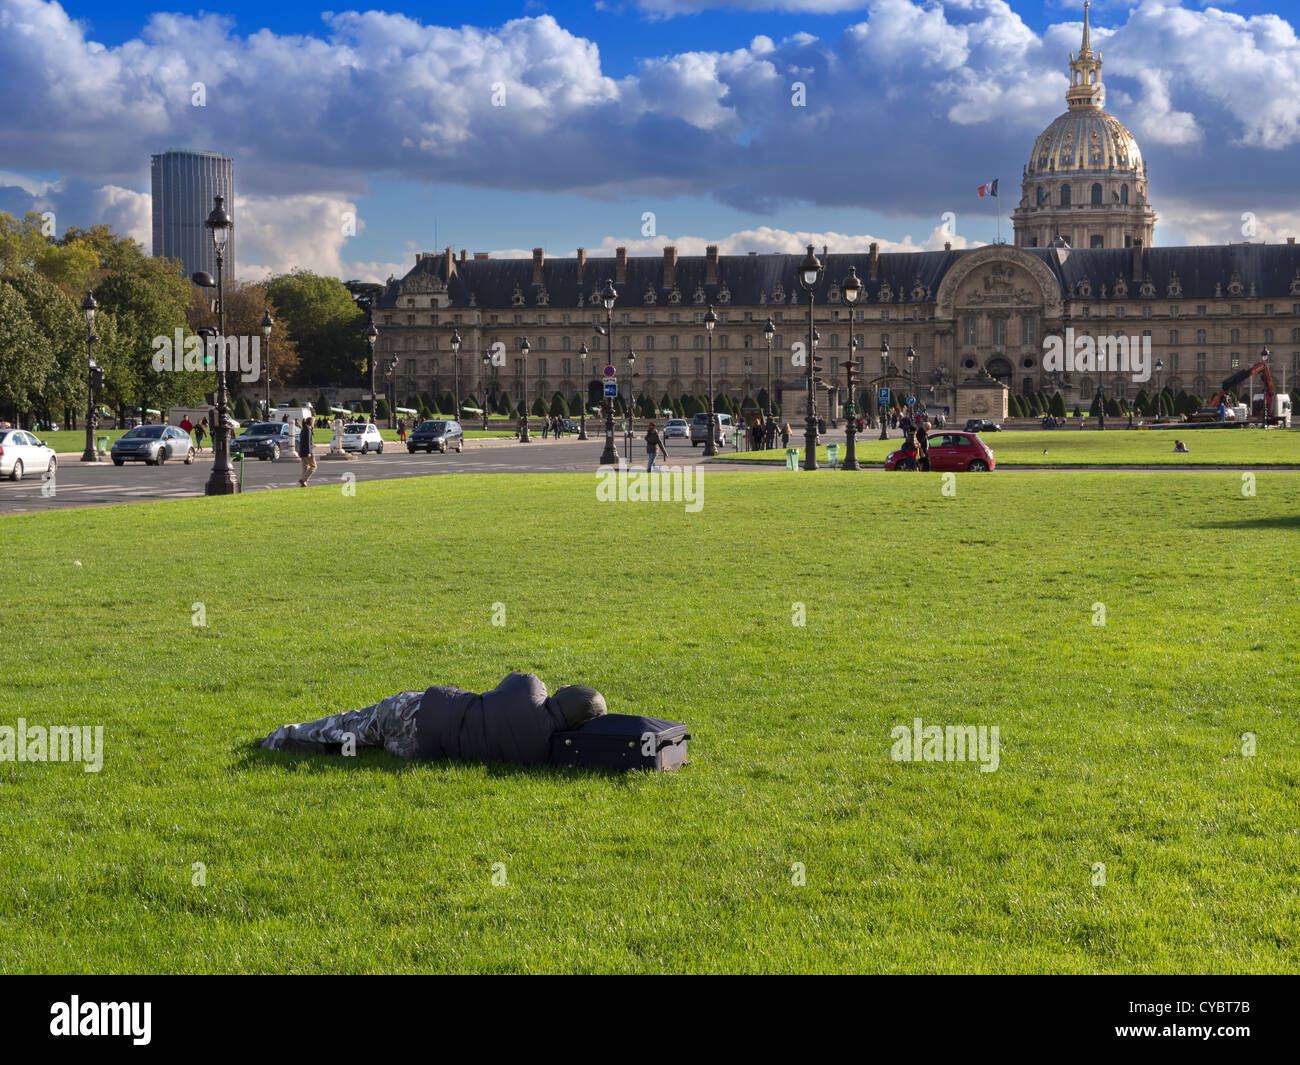 Homeless person sleeping on the grass in front of Les Invalides, Paris - Stock Image